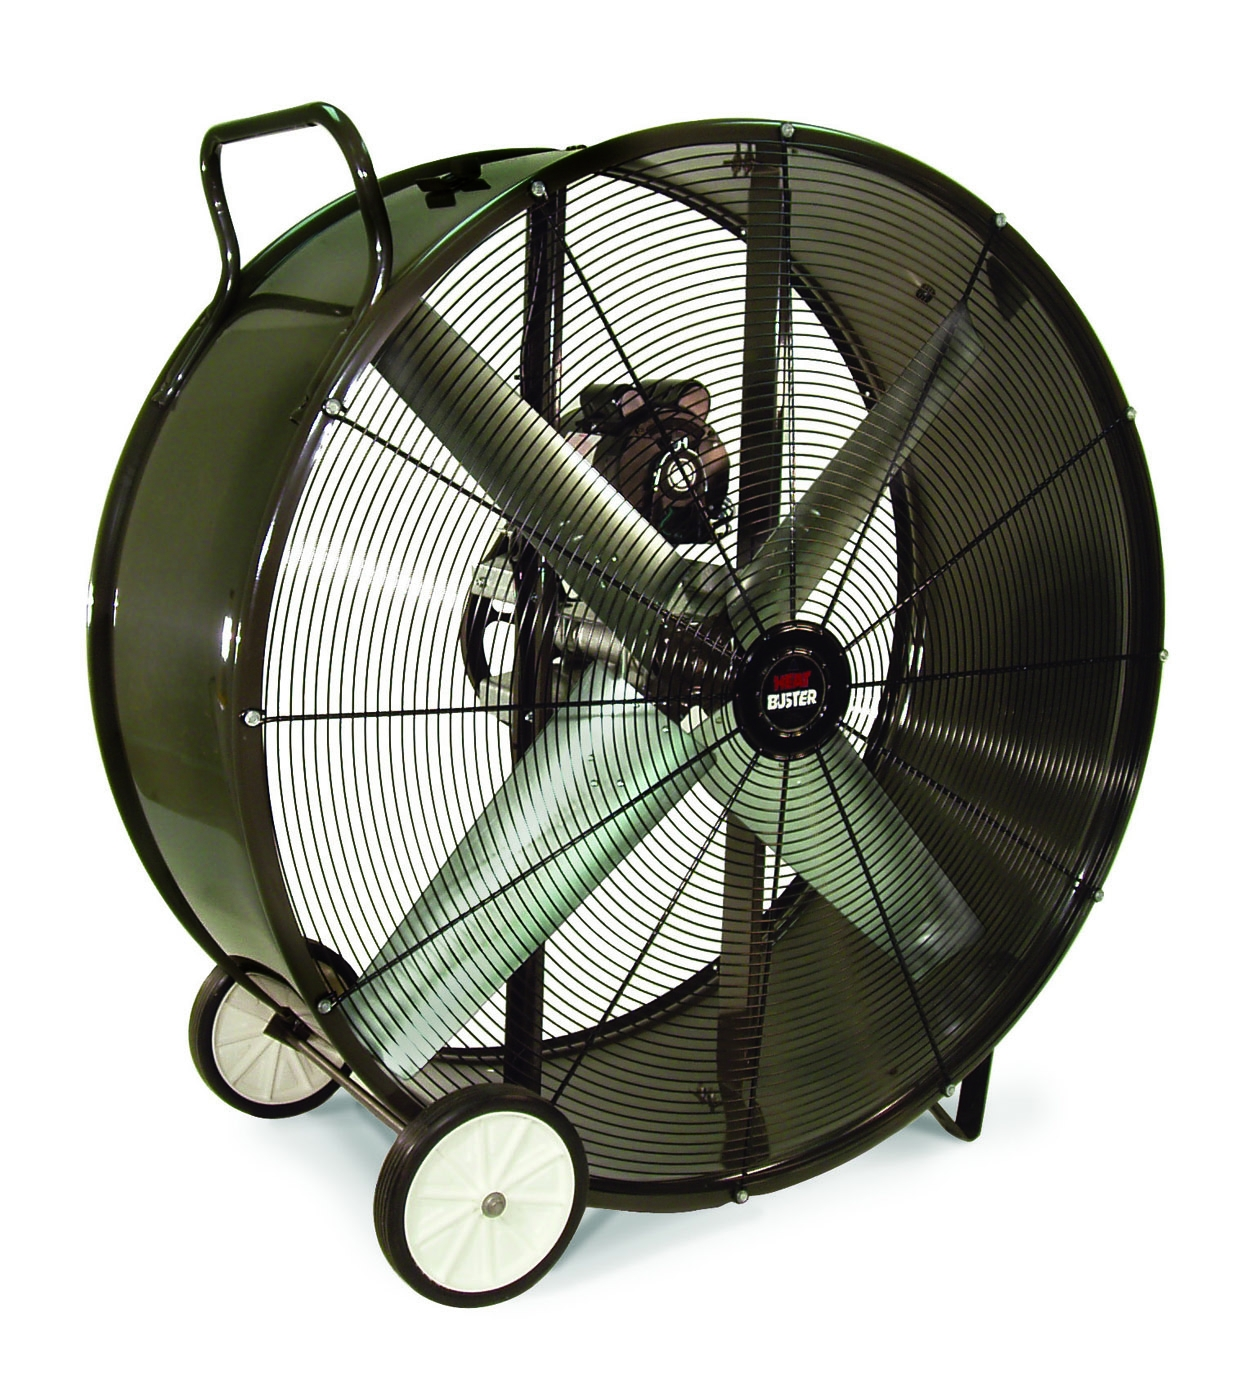 Triangle Fans TPC 4215 Heat Busters Portable Blower Fan, Belt Drive